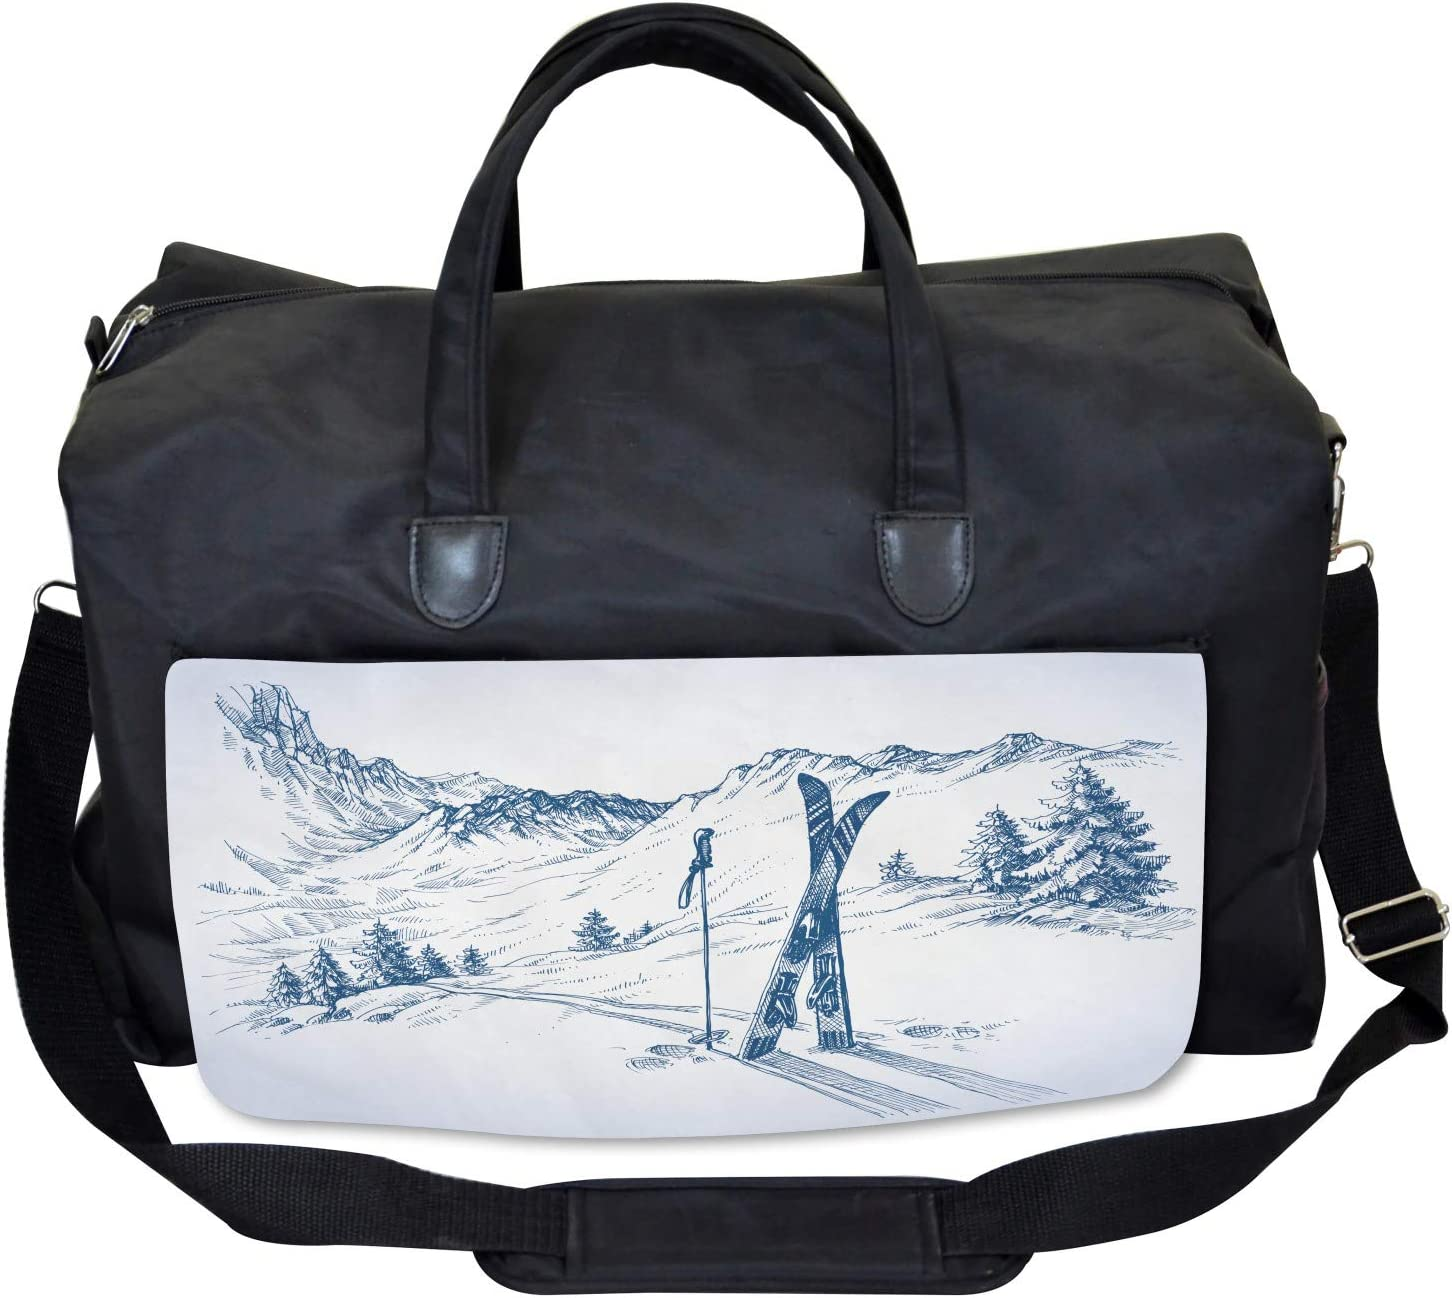 Ambesonne Winter Gym Bag Large Weekender Carry-on Ski Sport Mountain View